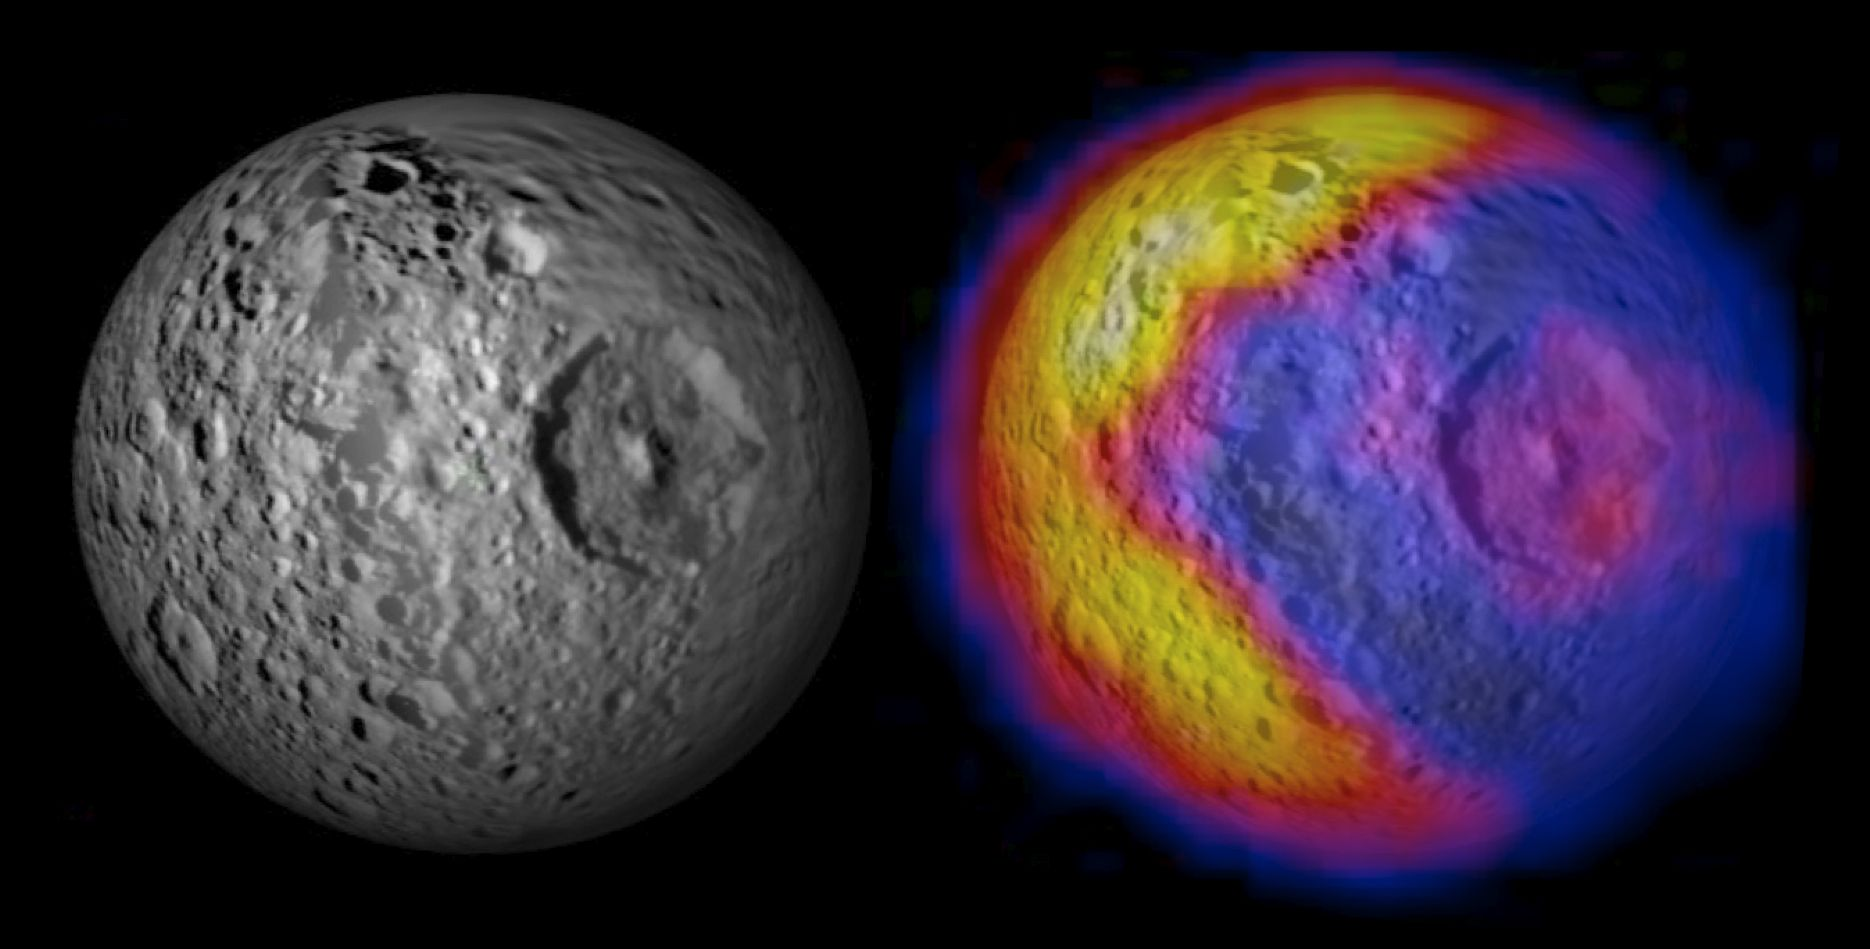 Saturn's moon Mimas looks like the Star Wars Death Star -- and has a Pac Man heat signature.